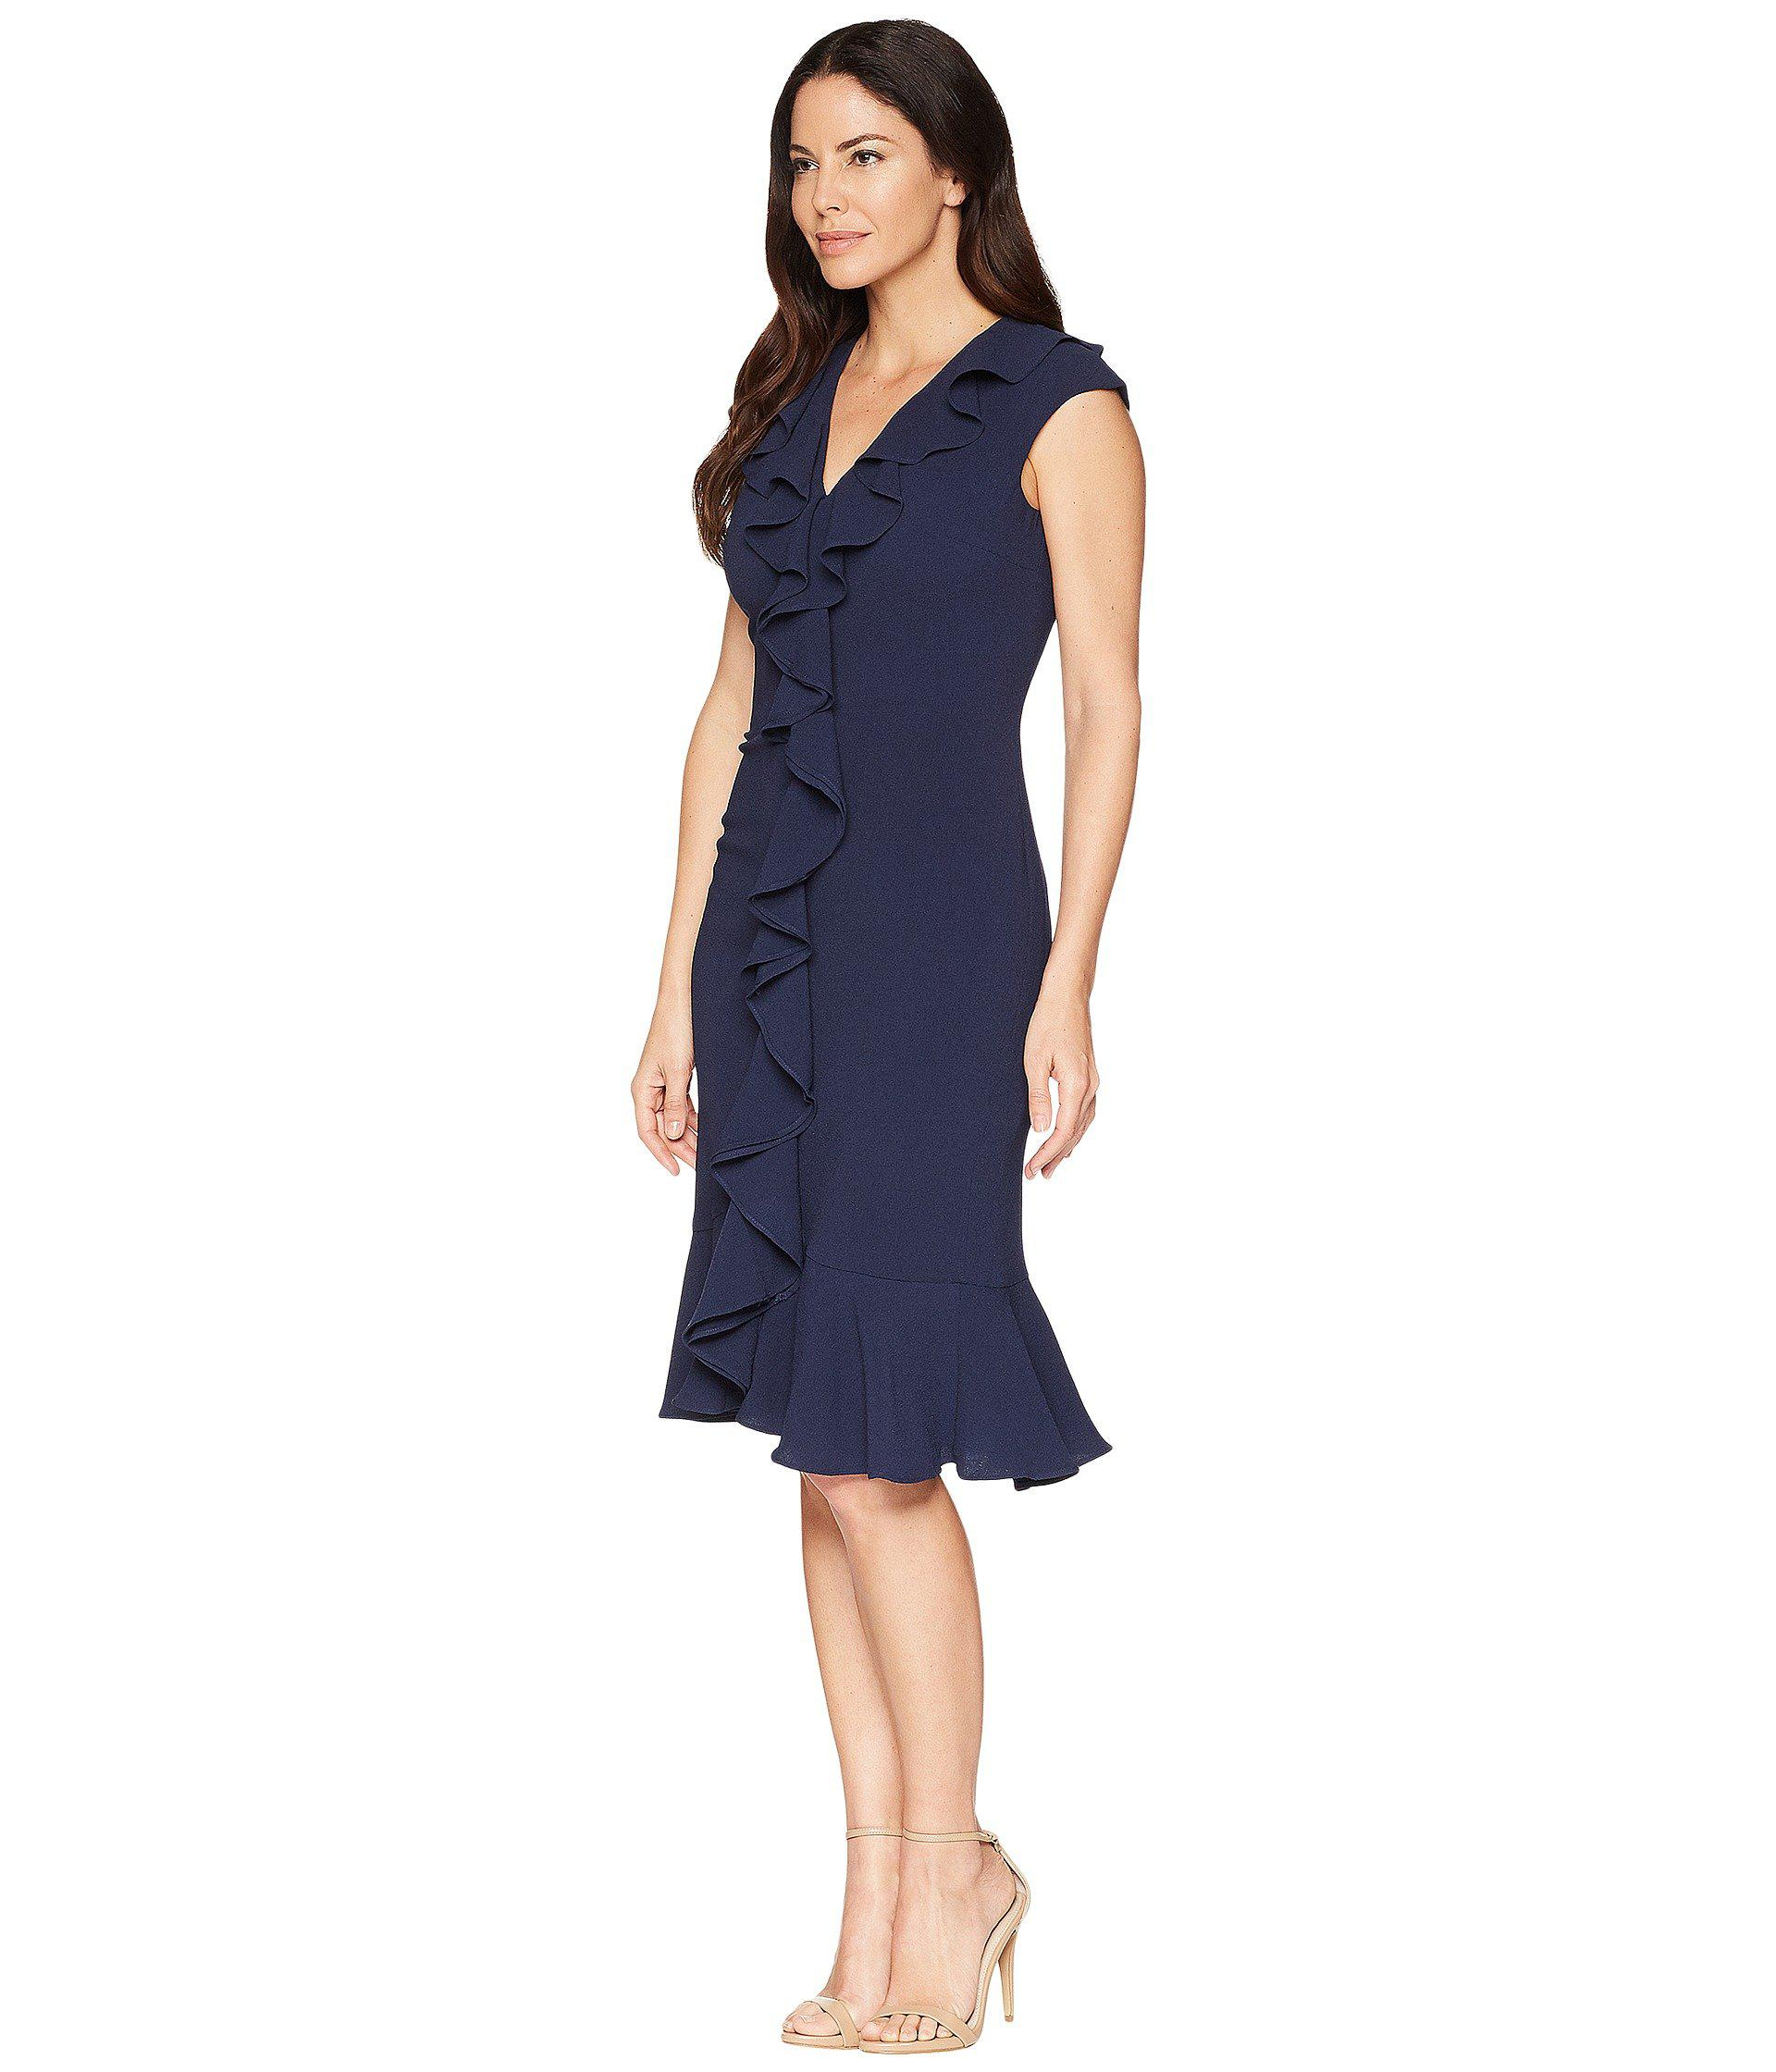 fb2267951da Lyst - Maggy London 30s Crepe Cascade Ruffle Front Dress (navy) Women s  Dress in Blue